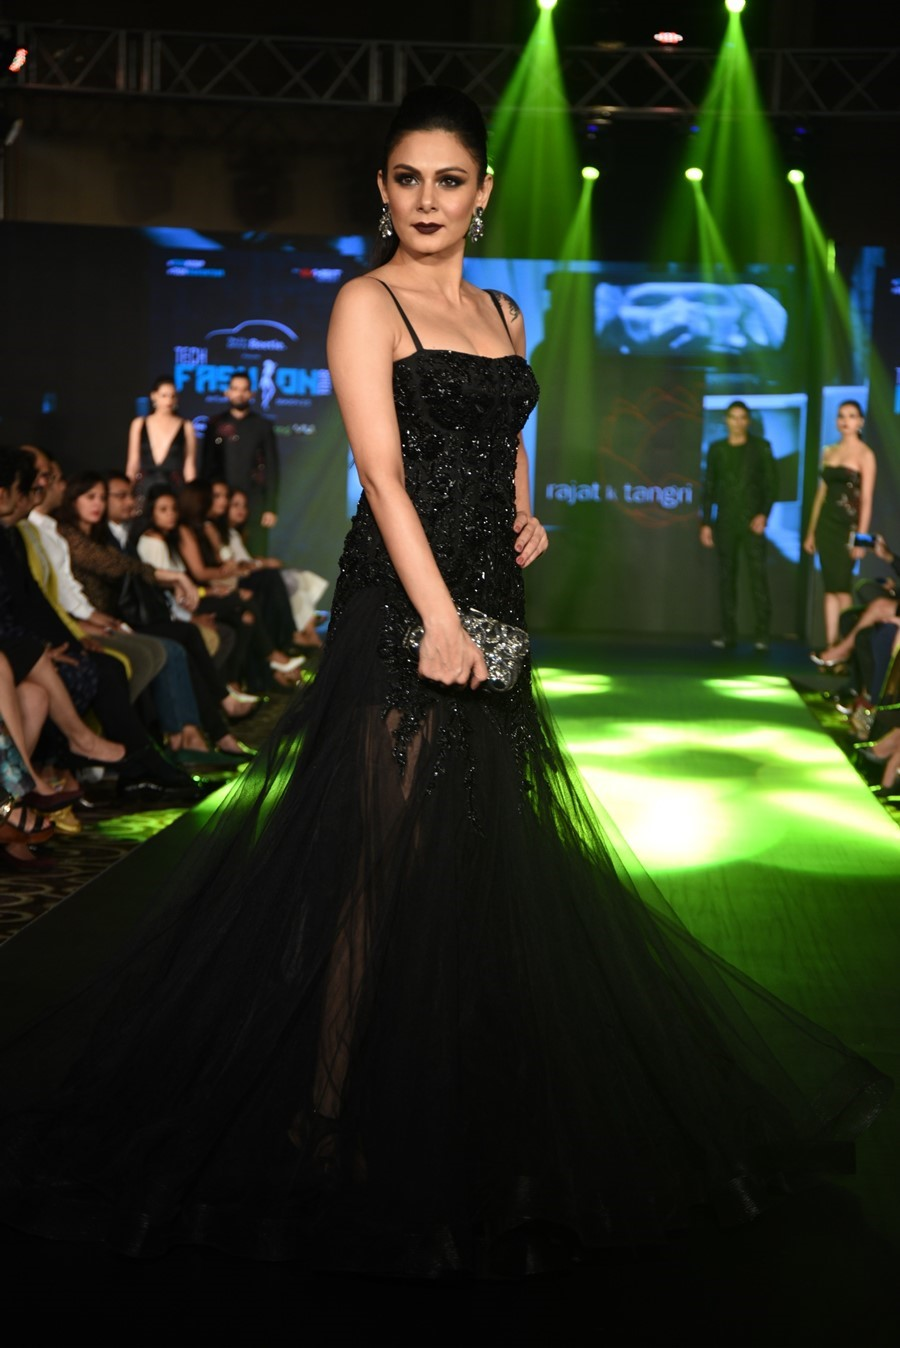 rajat-tangri-numaish-winter-show-dubai-fashion-indian-designer-blog-2